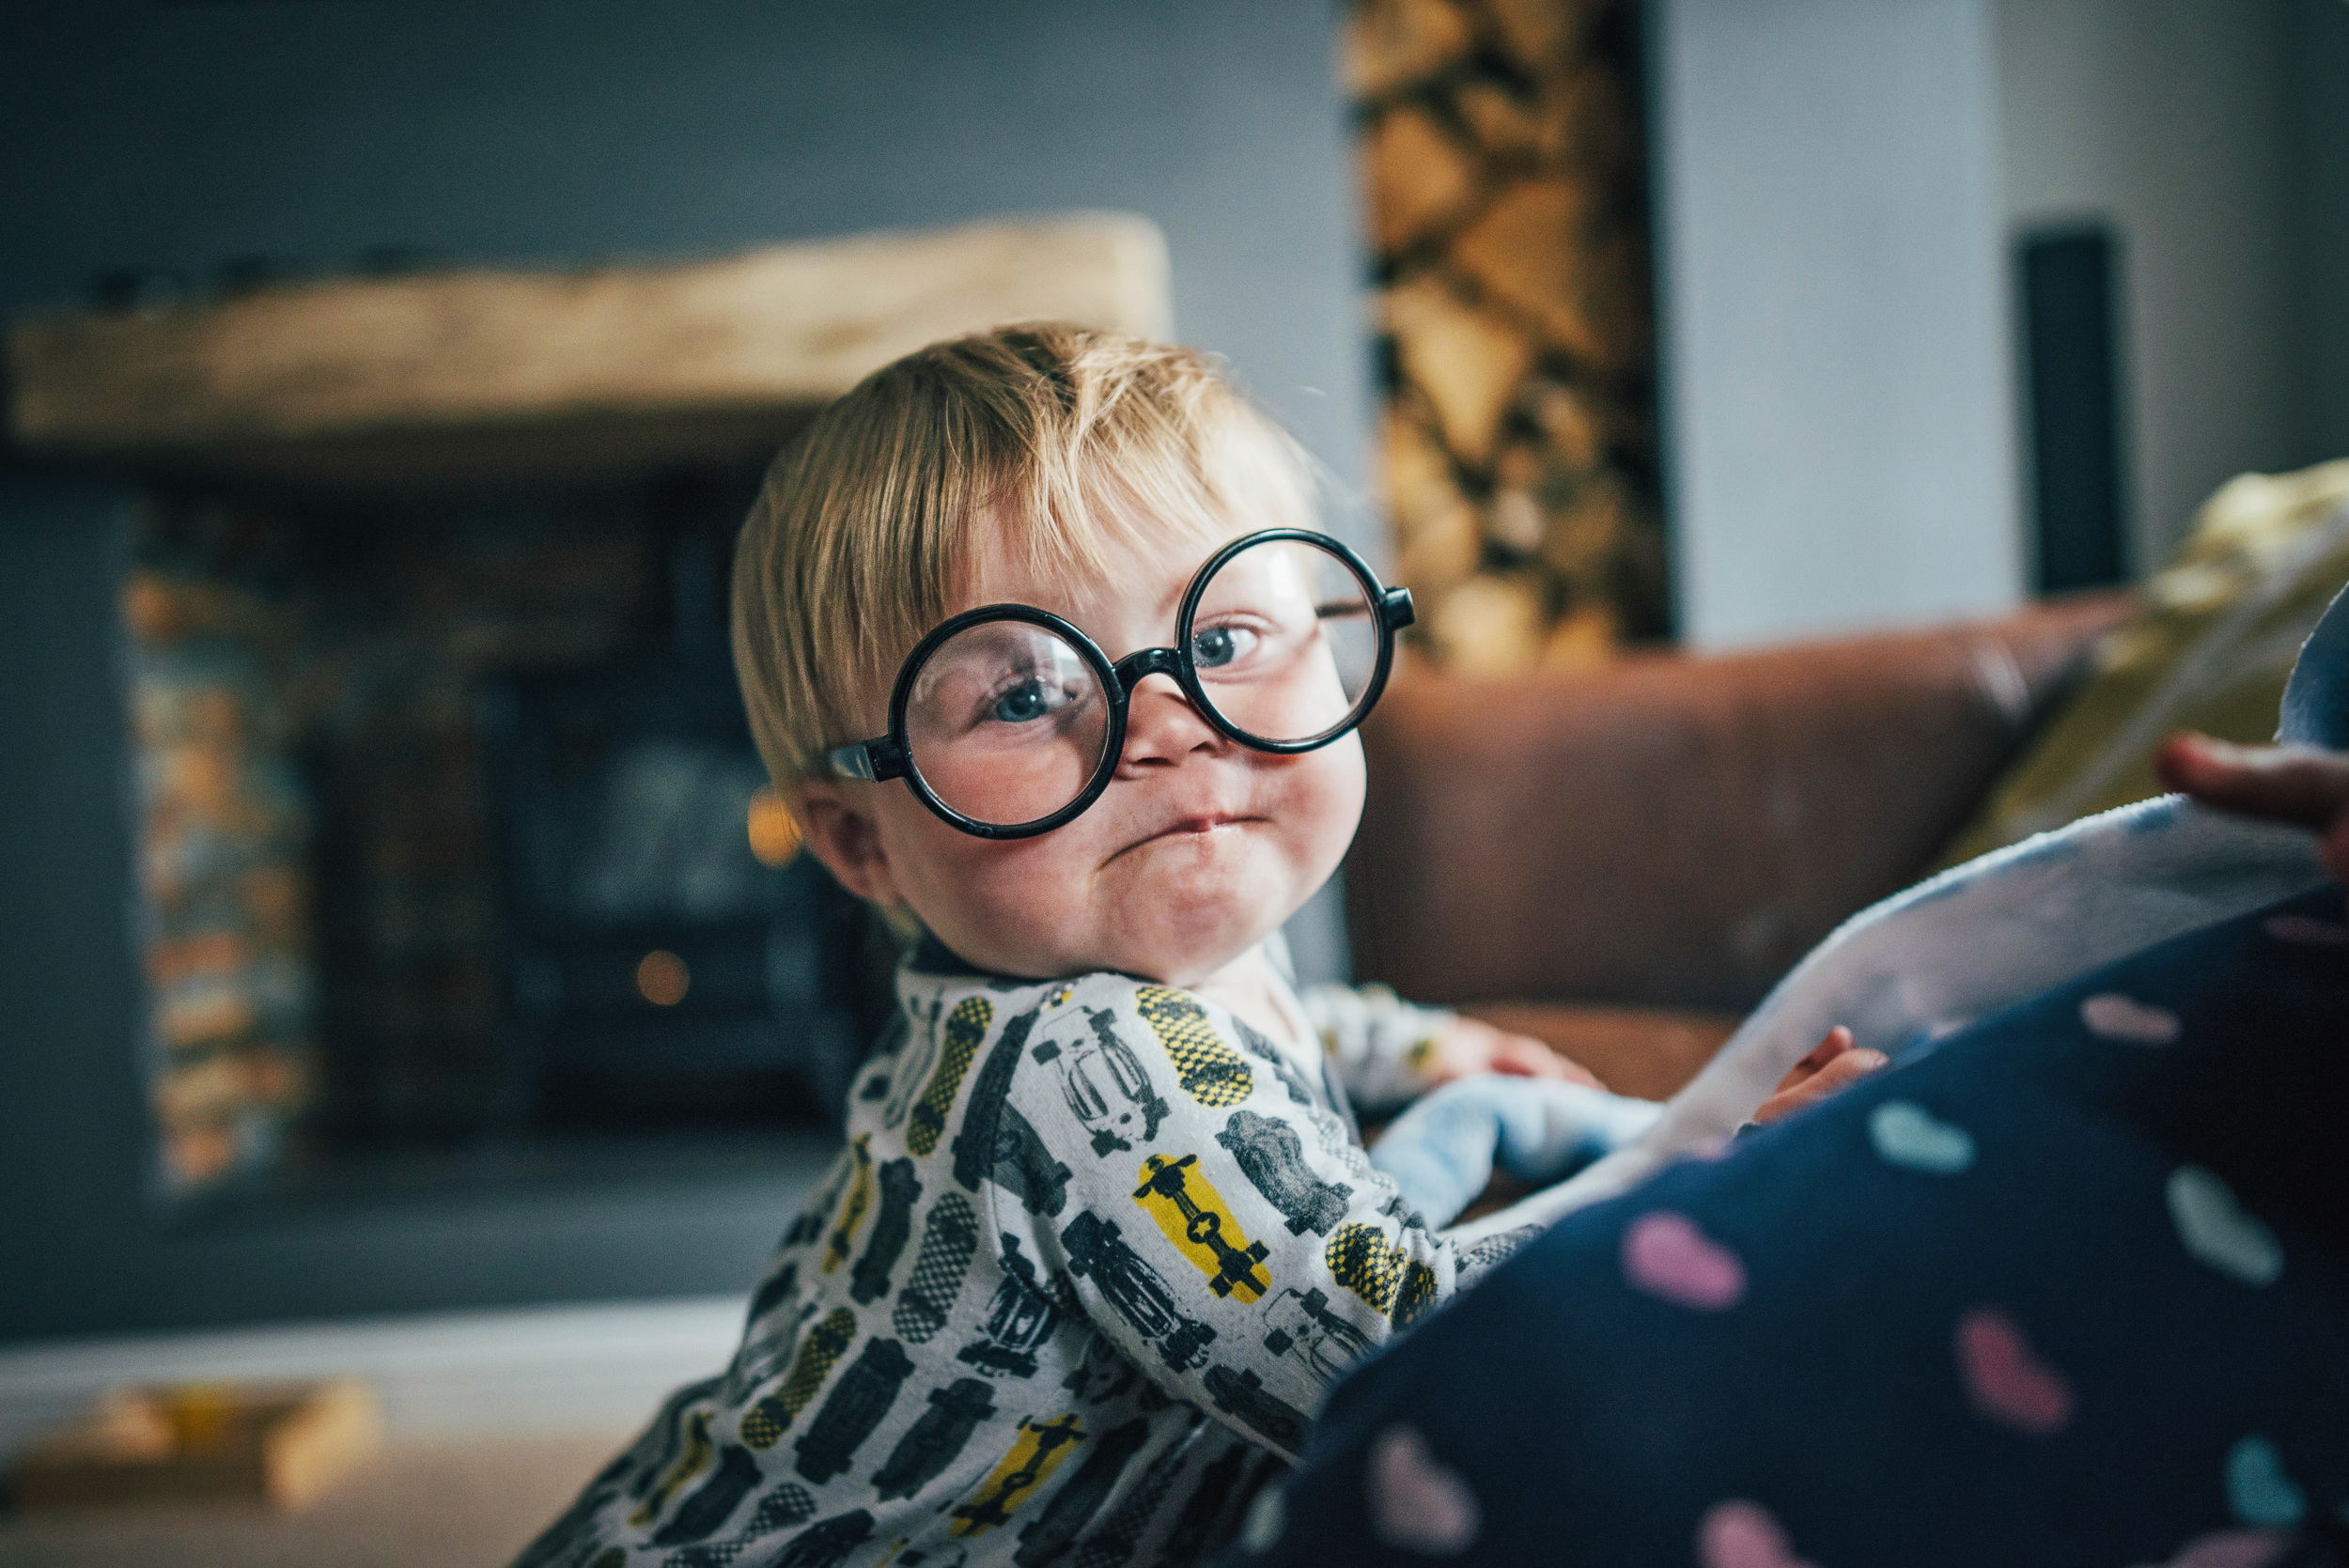 Baby boy in Harry Potter Glasses Essex UK Documentary Portrait and Lifestyle Photographer